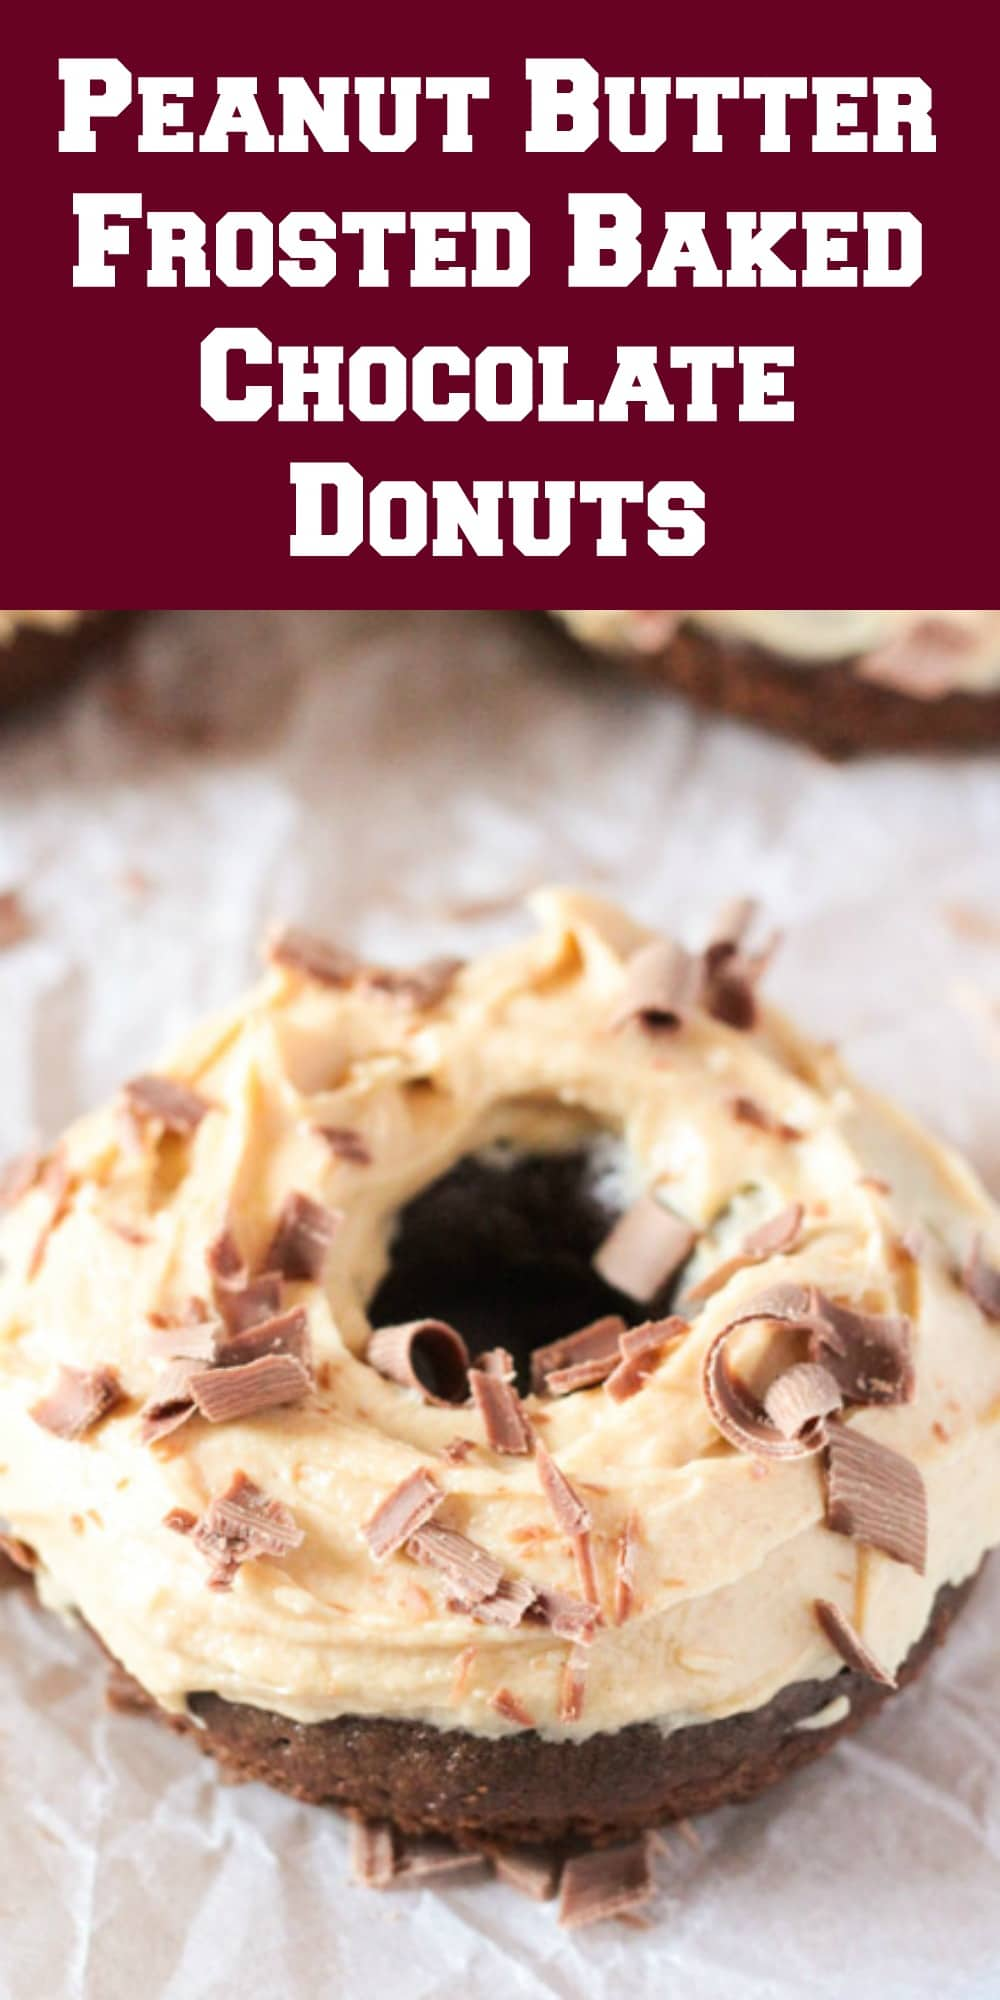 Peanut Butter Frosted Baked Chocolate Donuts